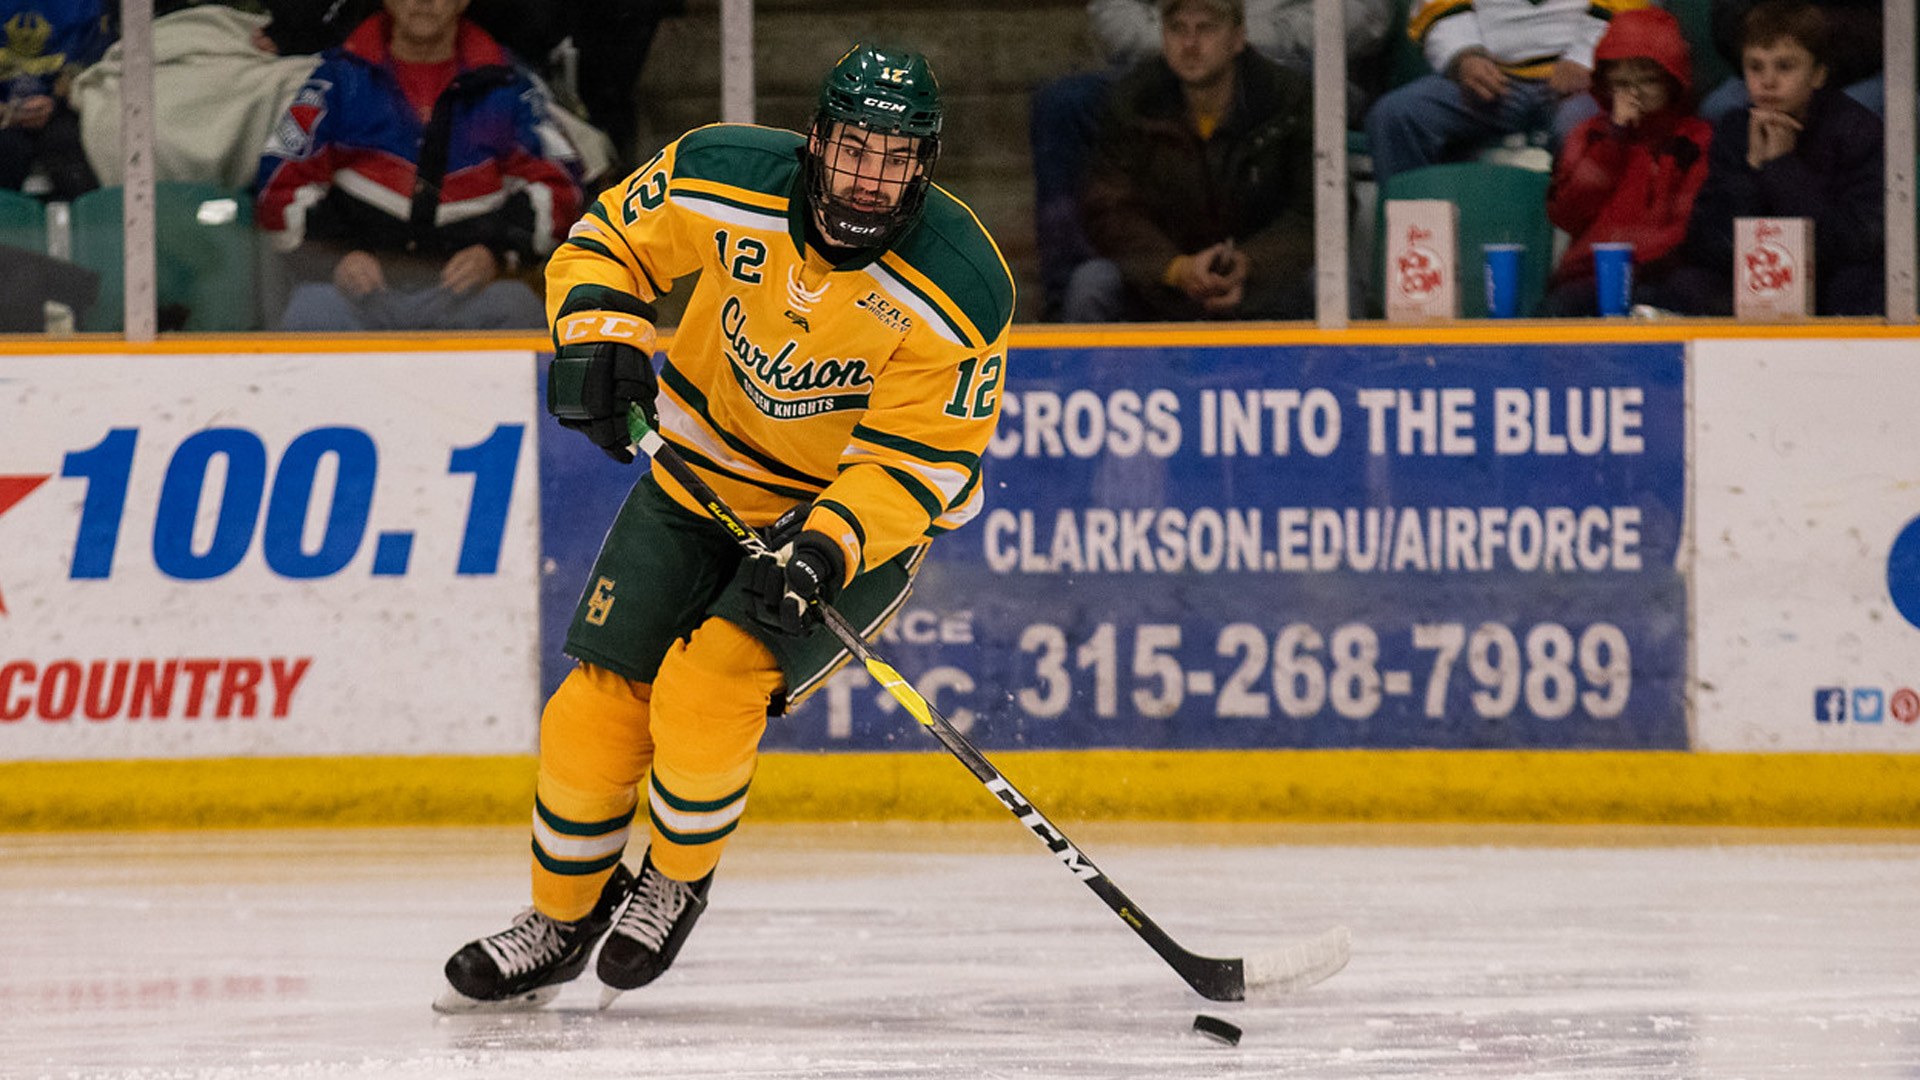 Jordan Schneider - Men's Hockey - Clarkson University Athletics